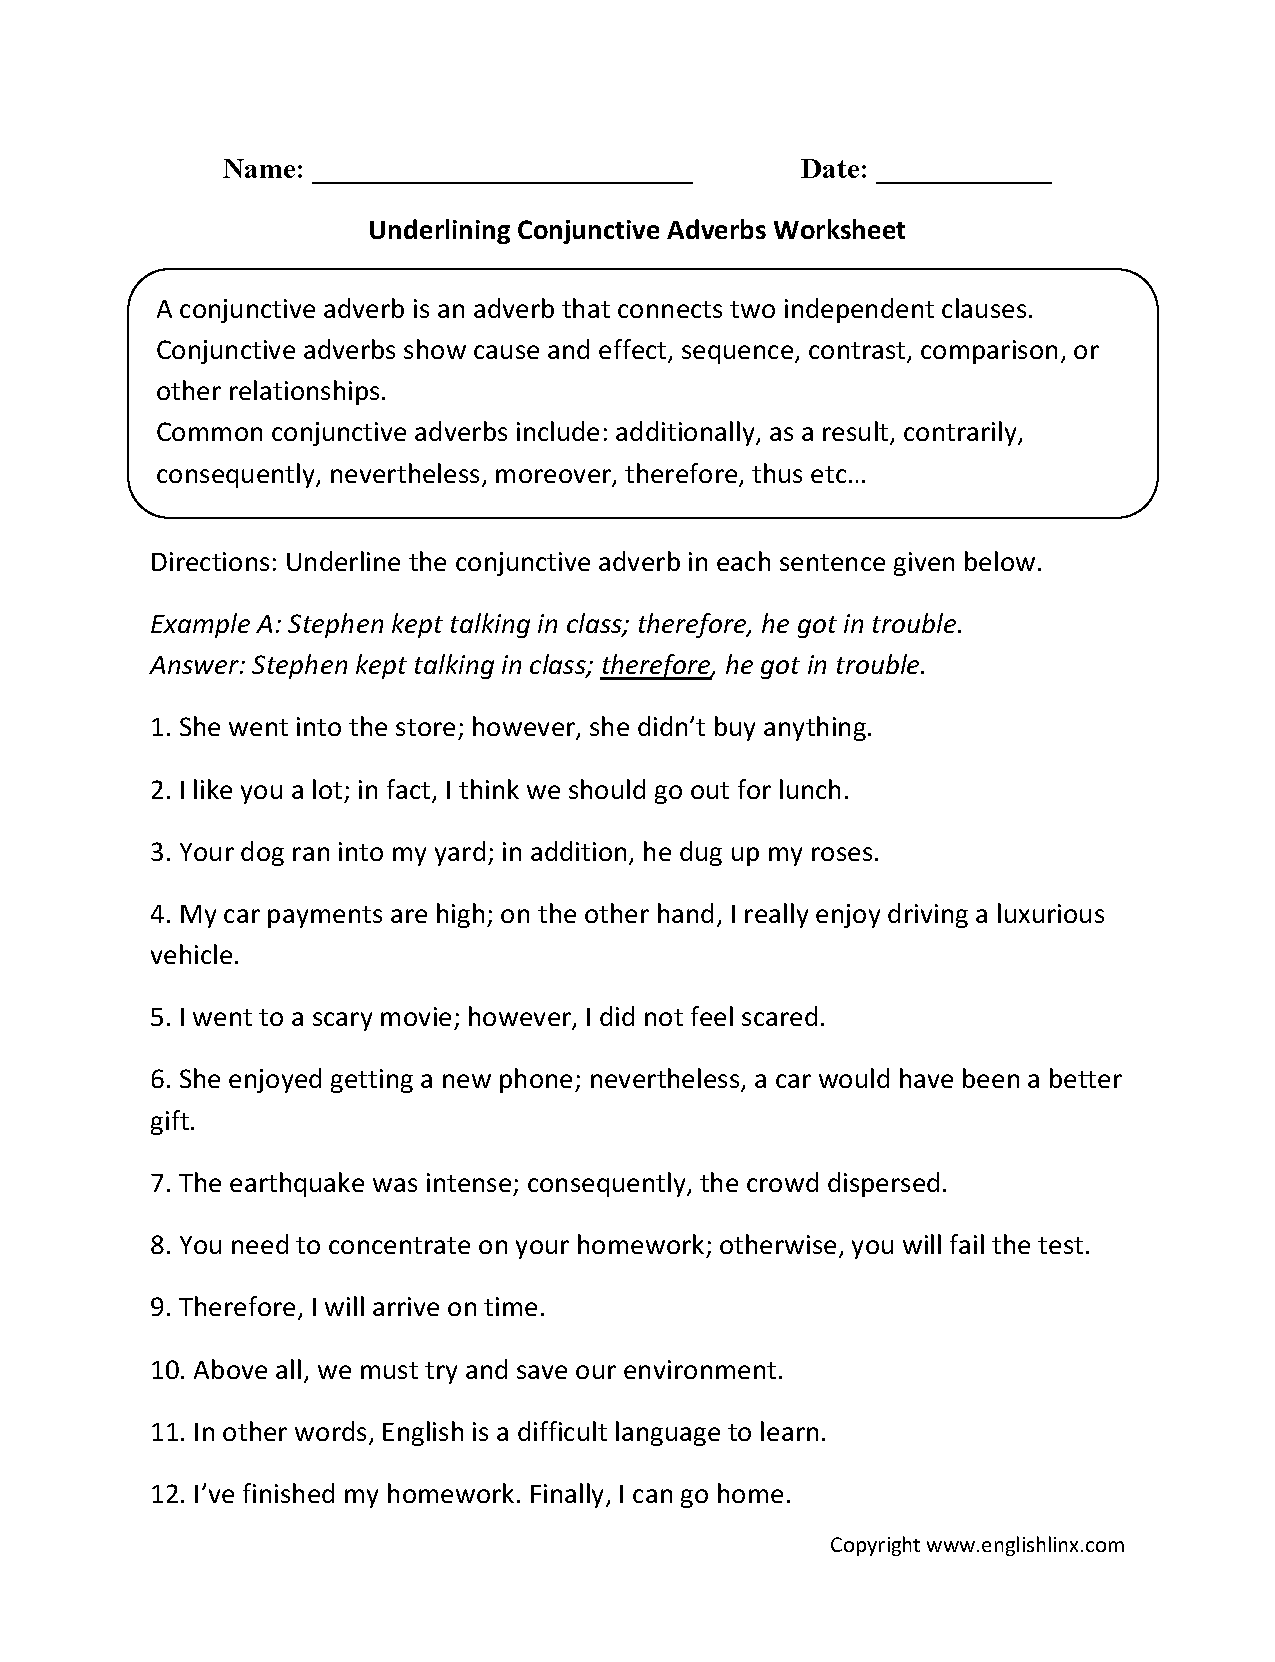 Weirdmailus  Marvelous Englishlinxcom  Conjunctions Worksheets With Remarkable Worksheet With Nice Ancient Egypt Worksheets For Kids Also Multiplication Lattice Method Worksheets In Addition Printable Grade  Worksheets And Road Safety Worksheets Ks As Well As Alphabetical Order Worksheets Ks Additionally Ratio Questions Worksheet From Englishlinxcom With Weirdmailus  Remarkable Englishlinxcom  Conjunctions Worksheets With Nice Worksheet And Marvelous Ancient Egypt Worksheets For Kids Also Multiplication Lattice Method Worksheets In Addition Printable Grade  Worksheets From Englishlinxcom